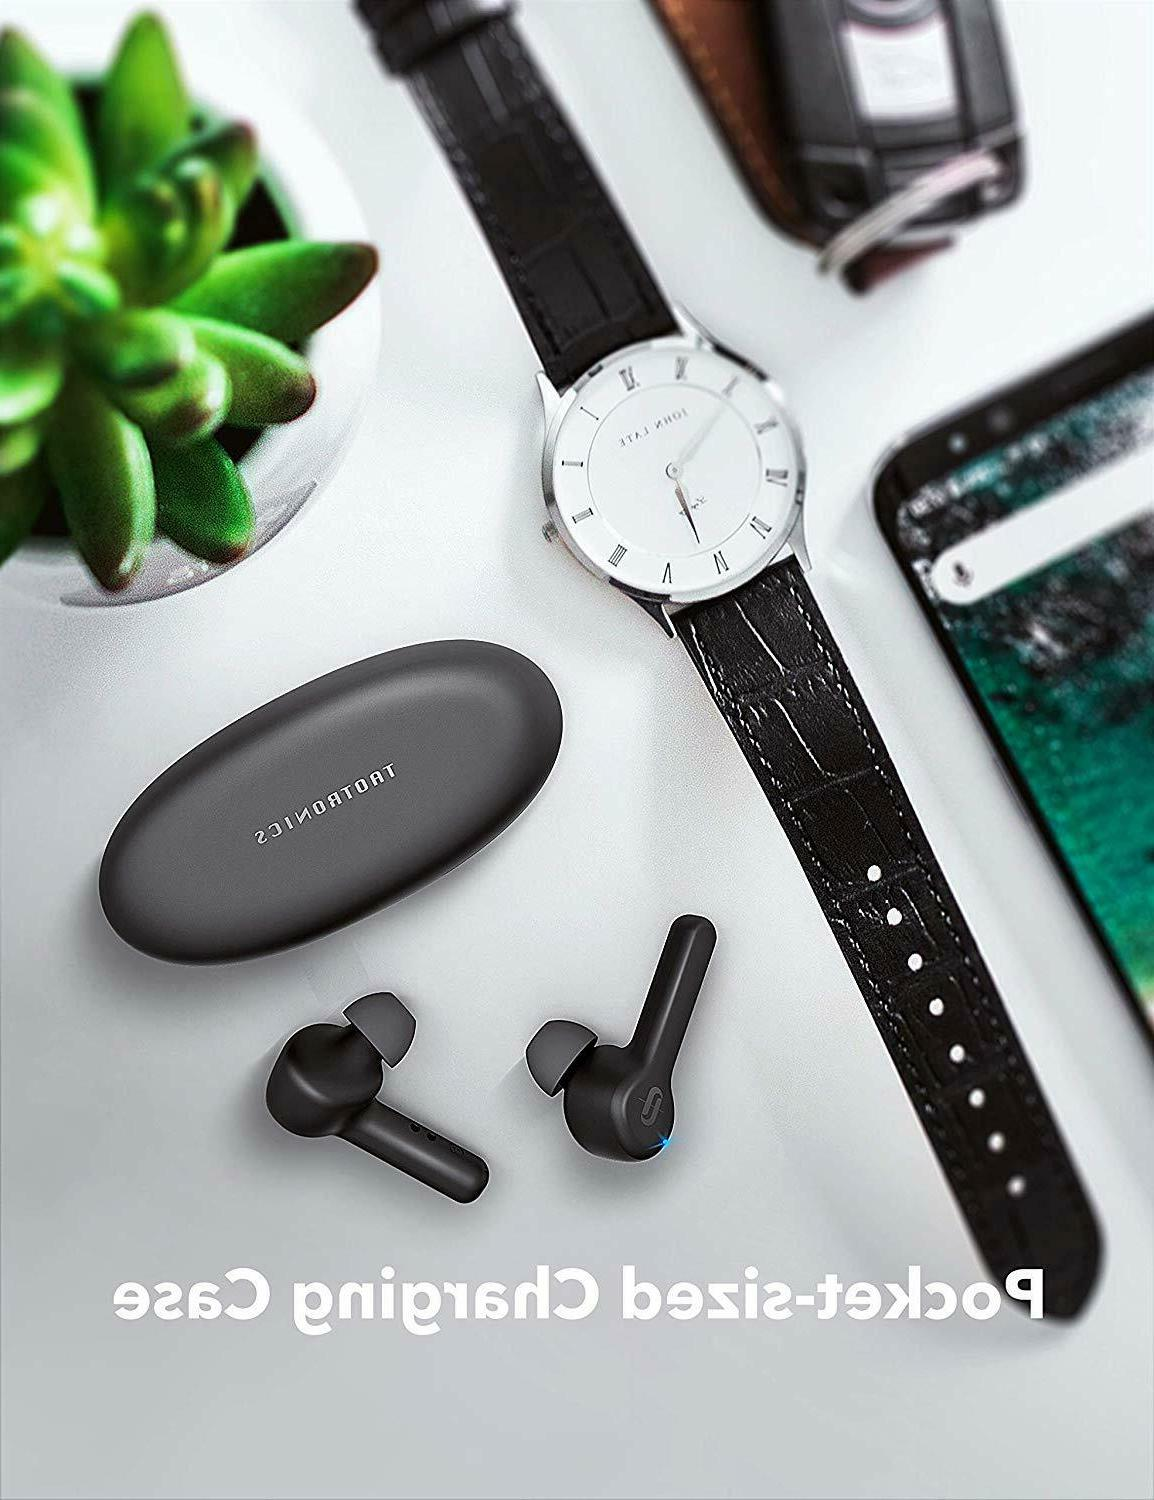 YUWISS Bluetooth 24Hrs Wireless for Cell